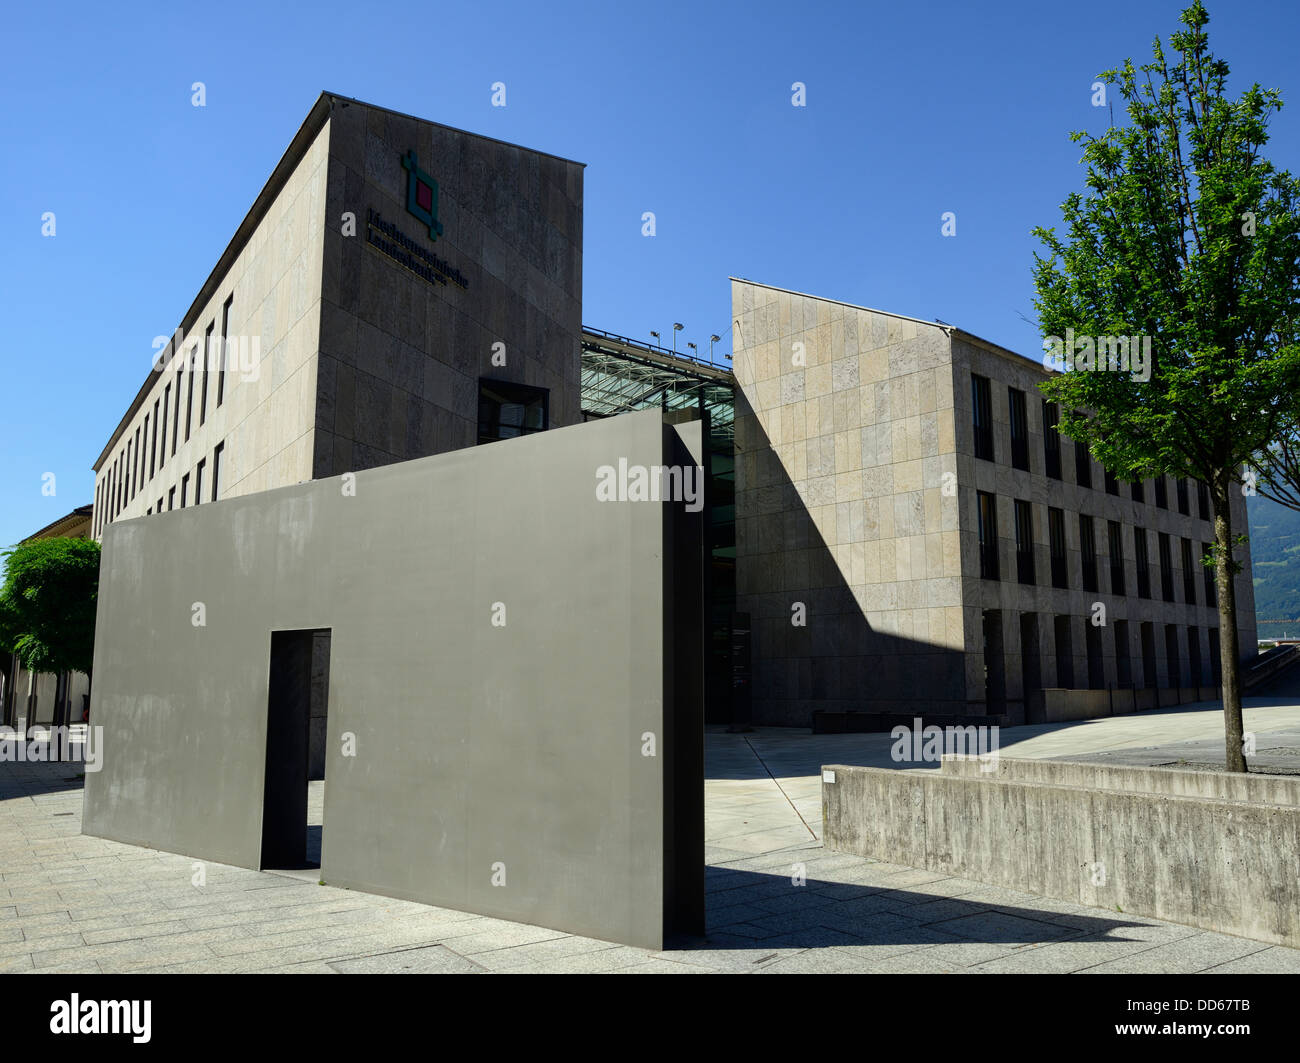 Bank, Vaduz, Liechtenstein, Europe - Stock Image